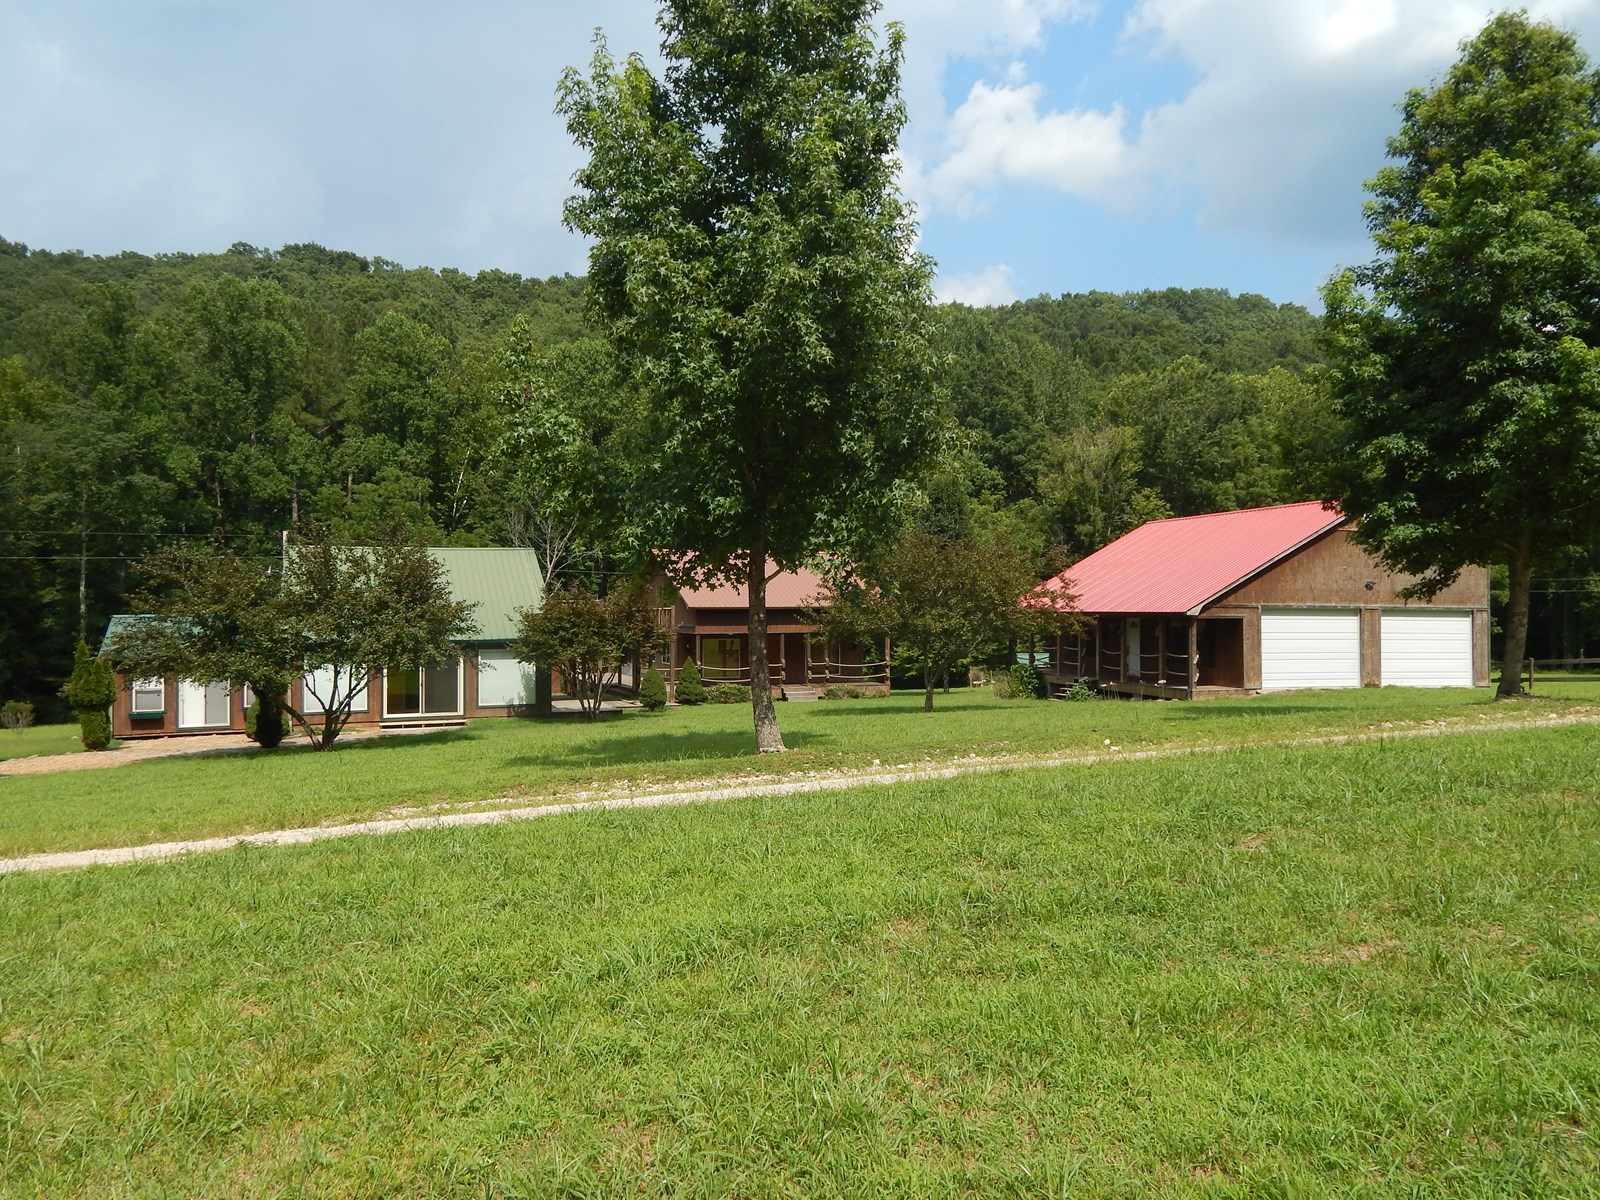 RUSTIC TN COUNTRY HOME FOR SALE 2.6 ACRE ARTISAN WELL STREAM